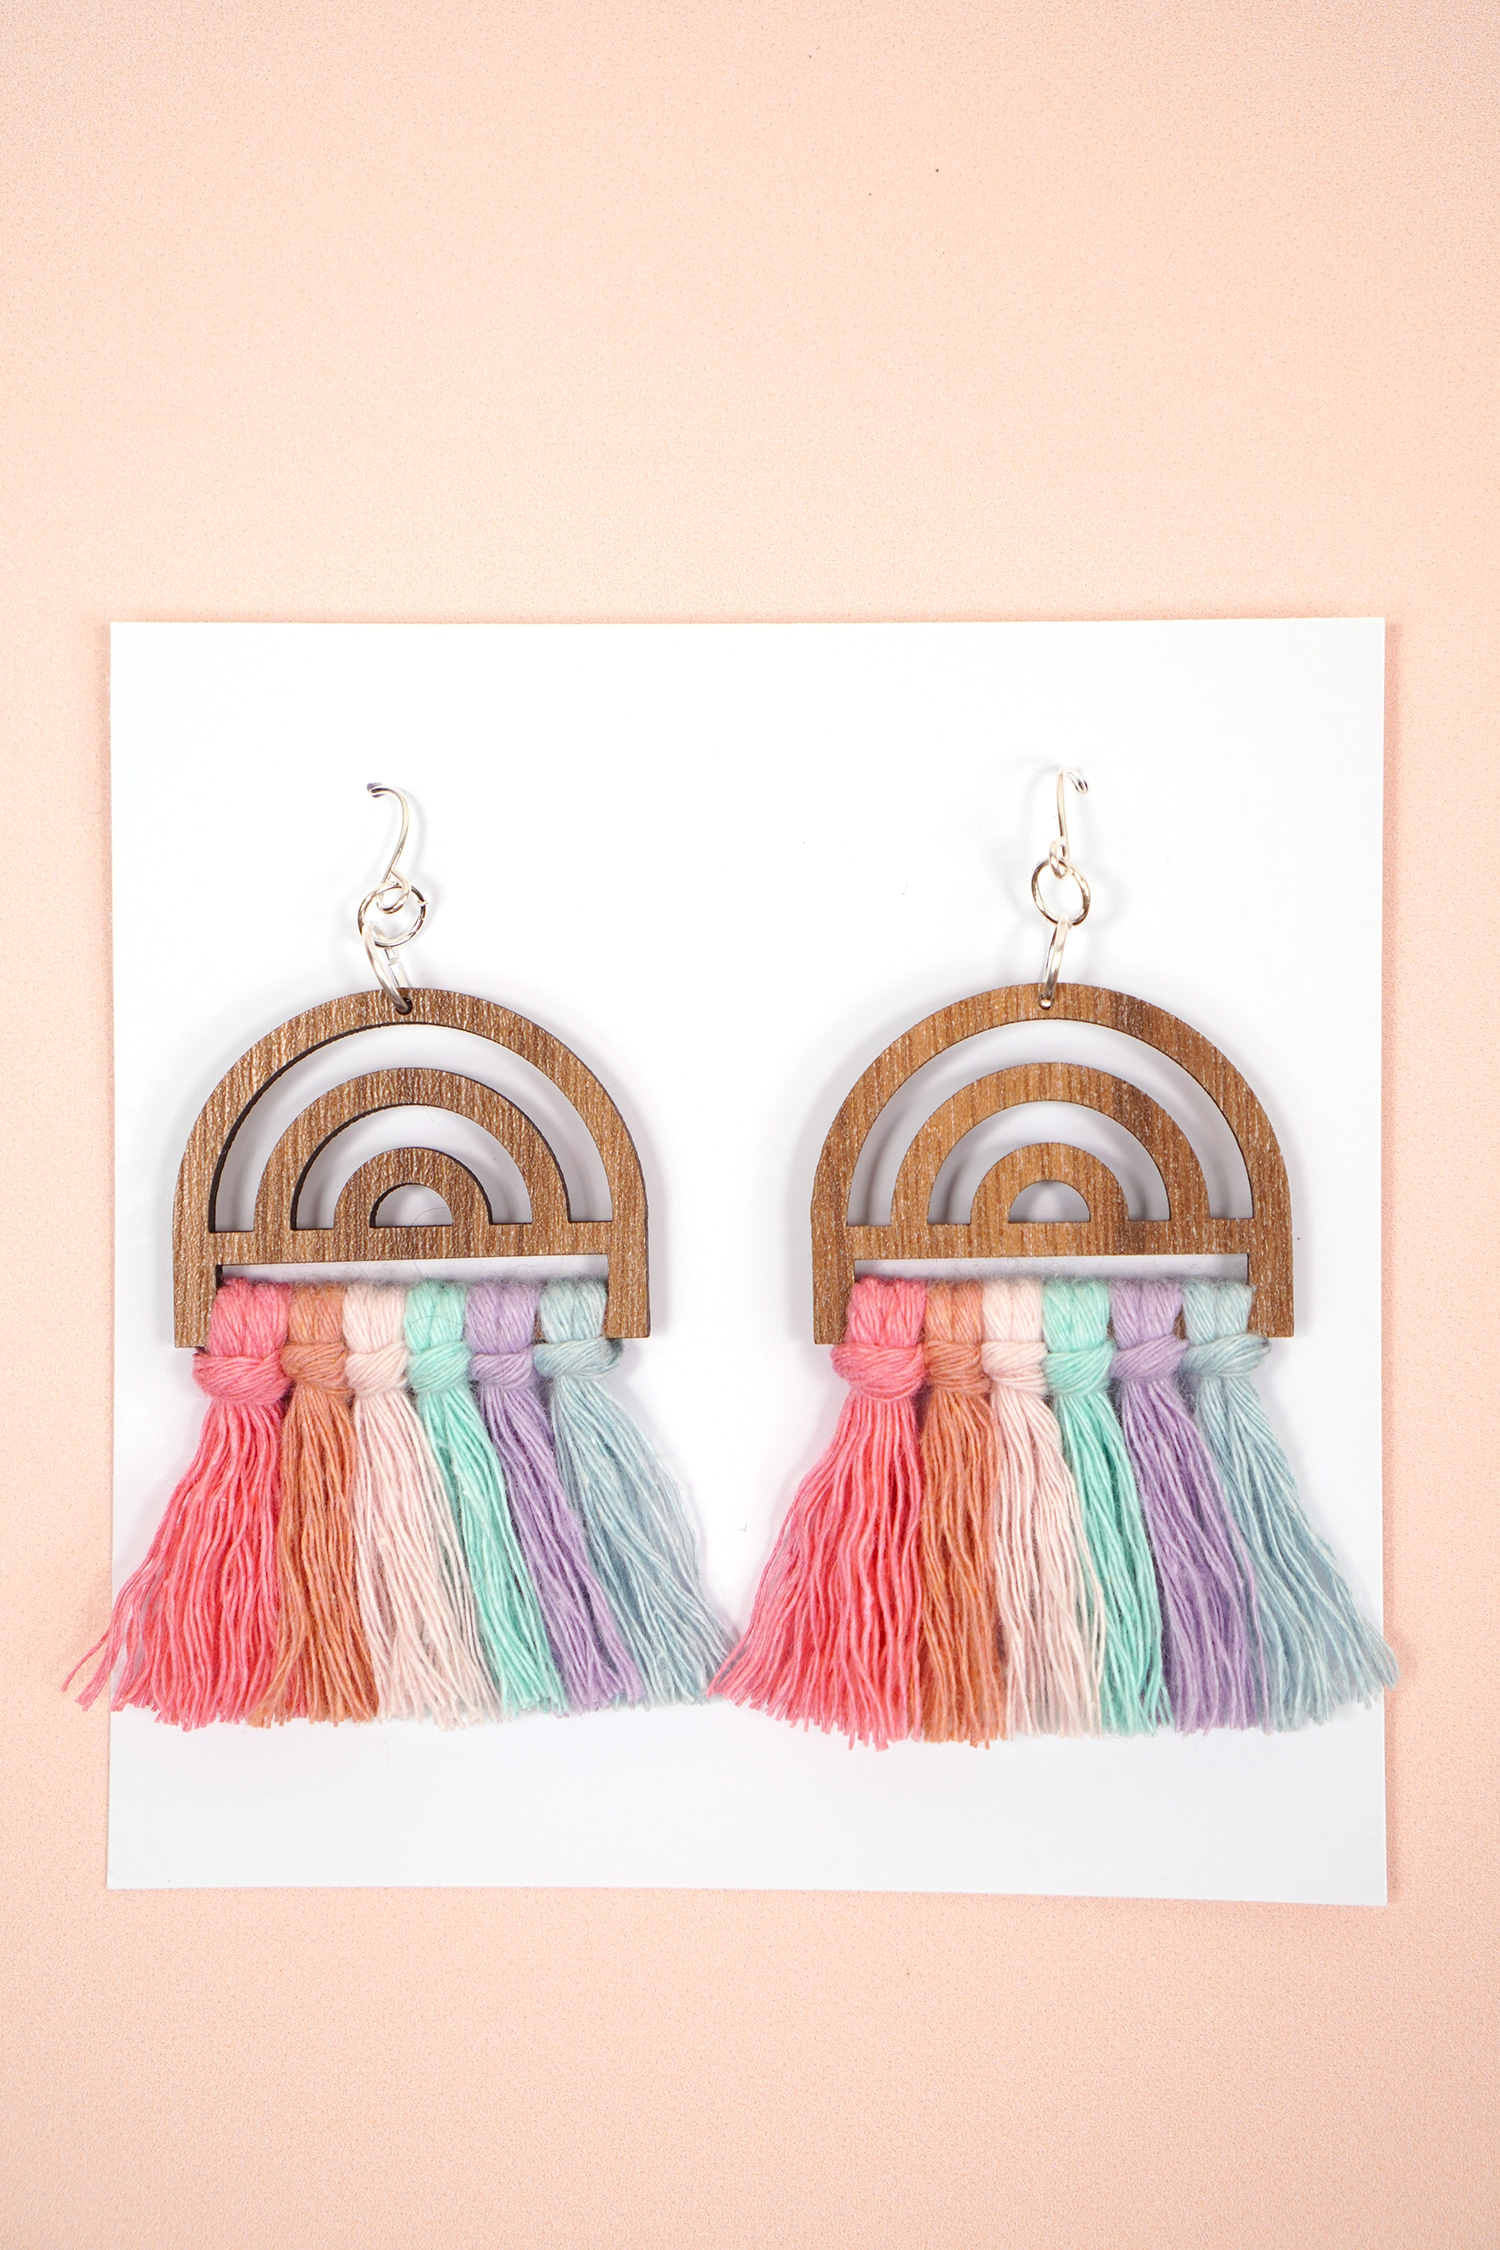 colorful wooden rainbow macrame earrings on white jewelry card on peach background